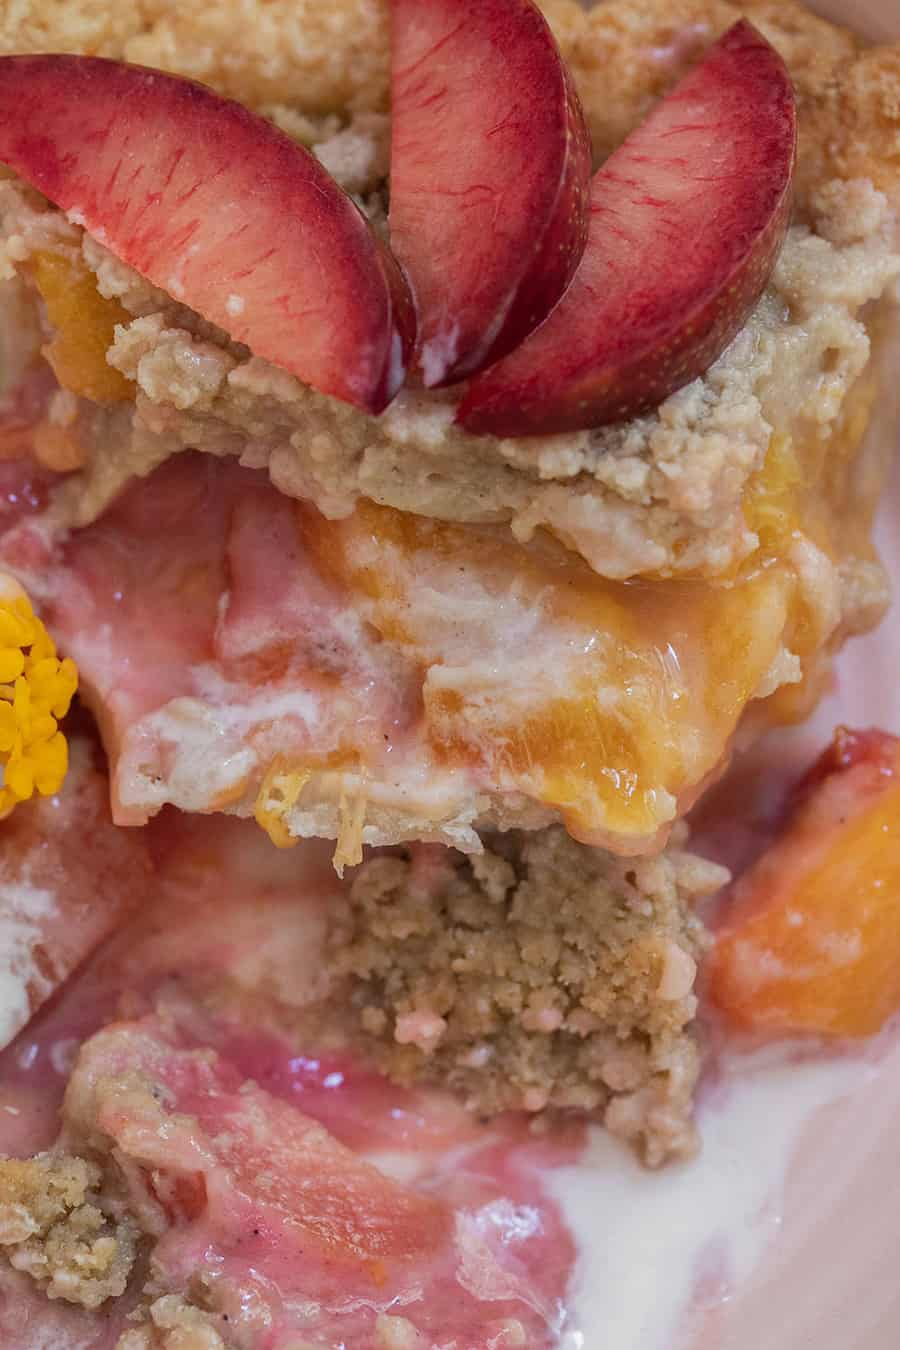 Fruit pie with sliced aprium and plumcot and crumble top.